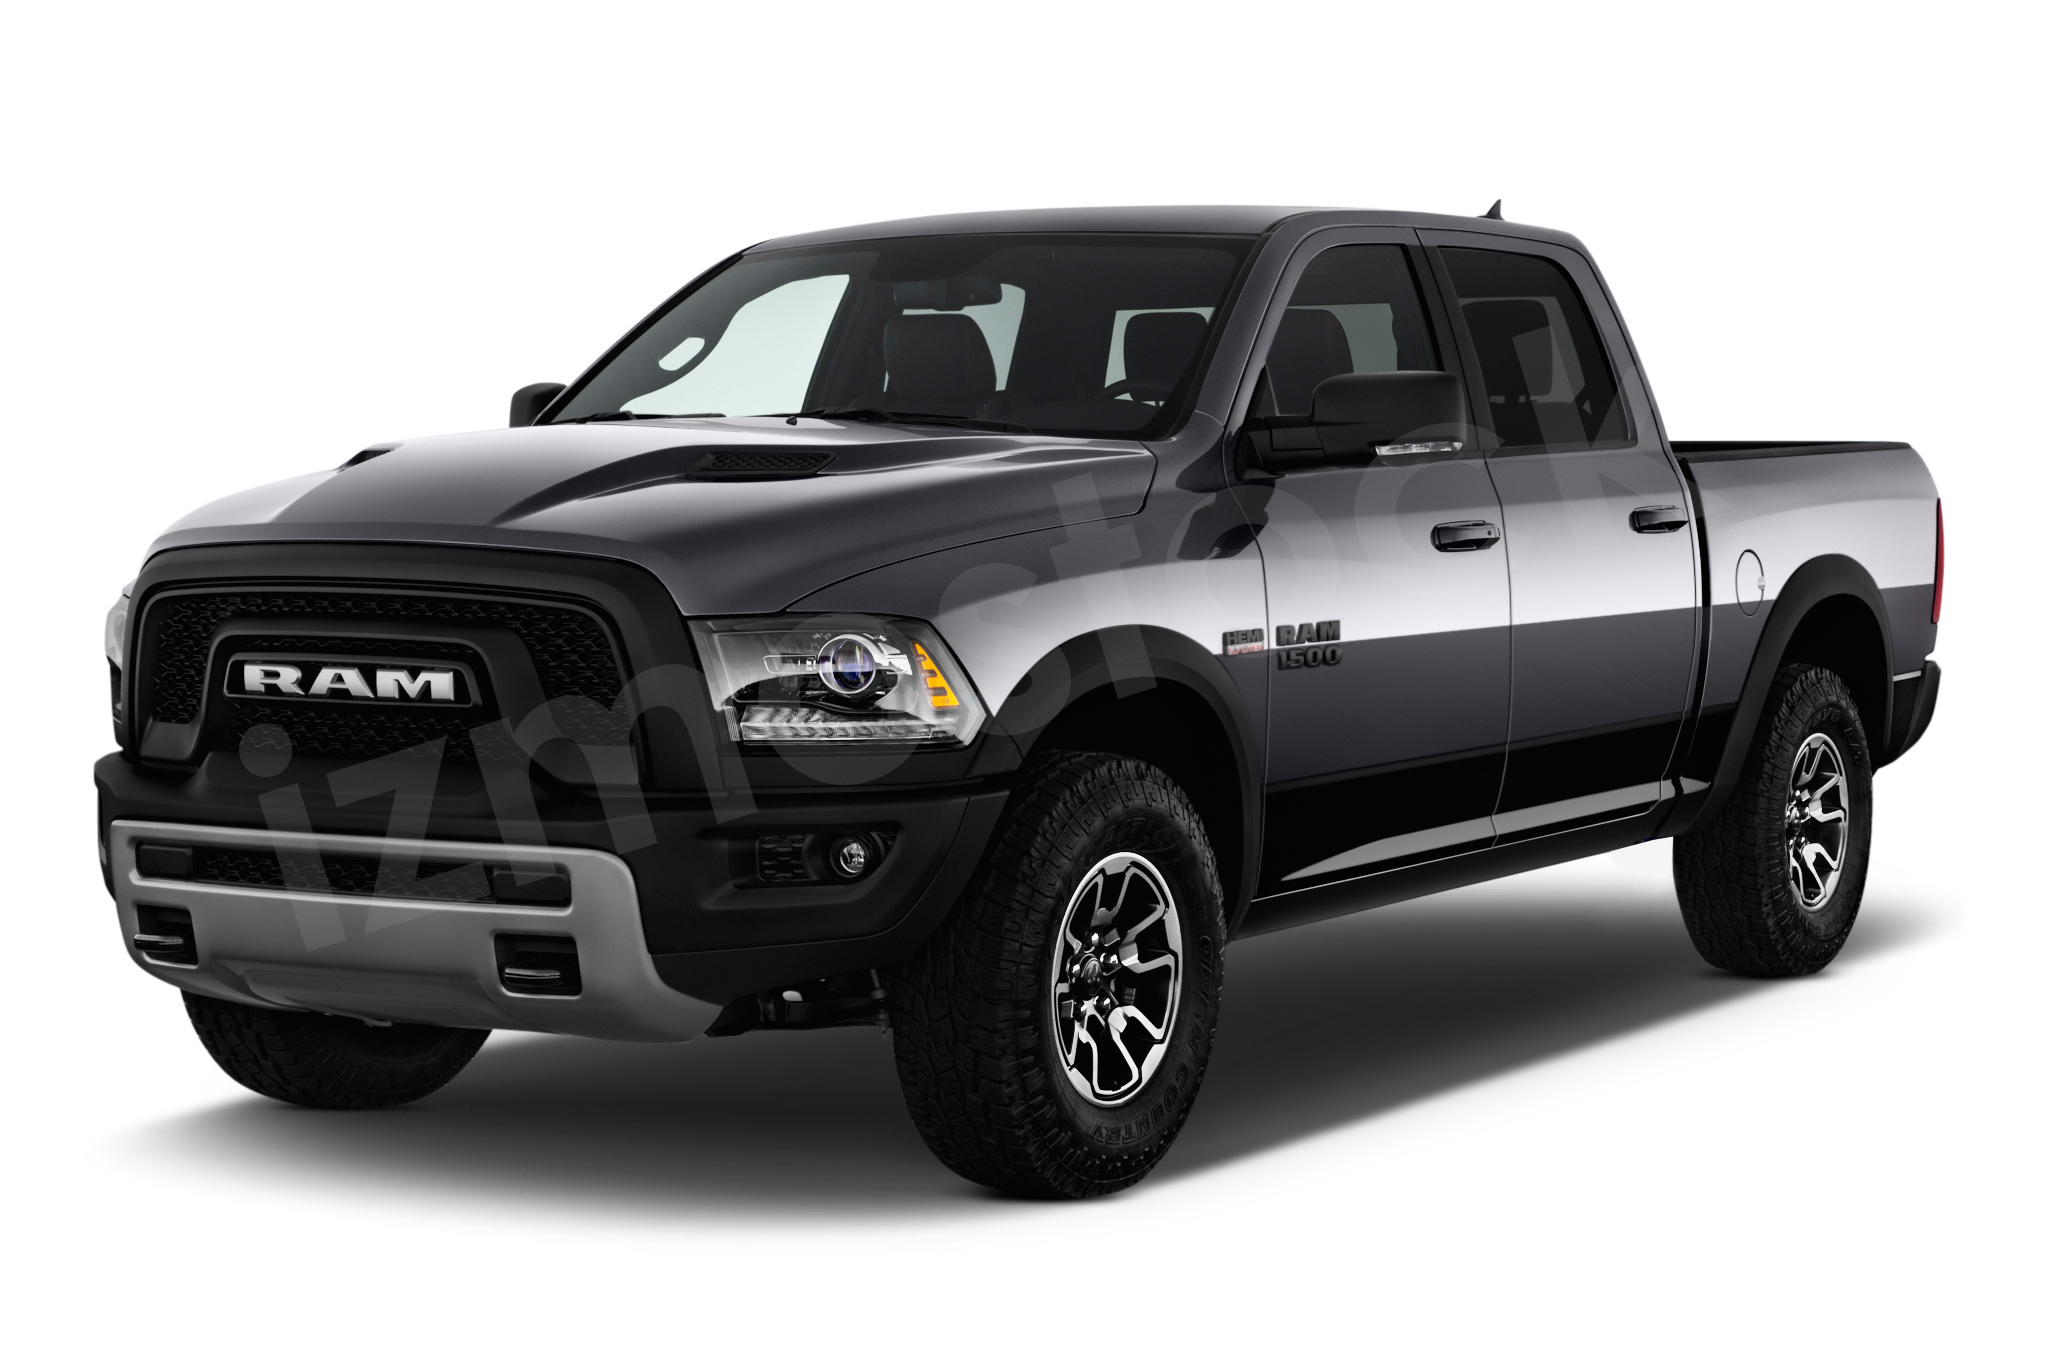 Ram 17rebel1500pu4a Angularfront Formerly Known As Dodge